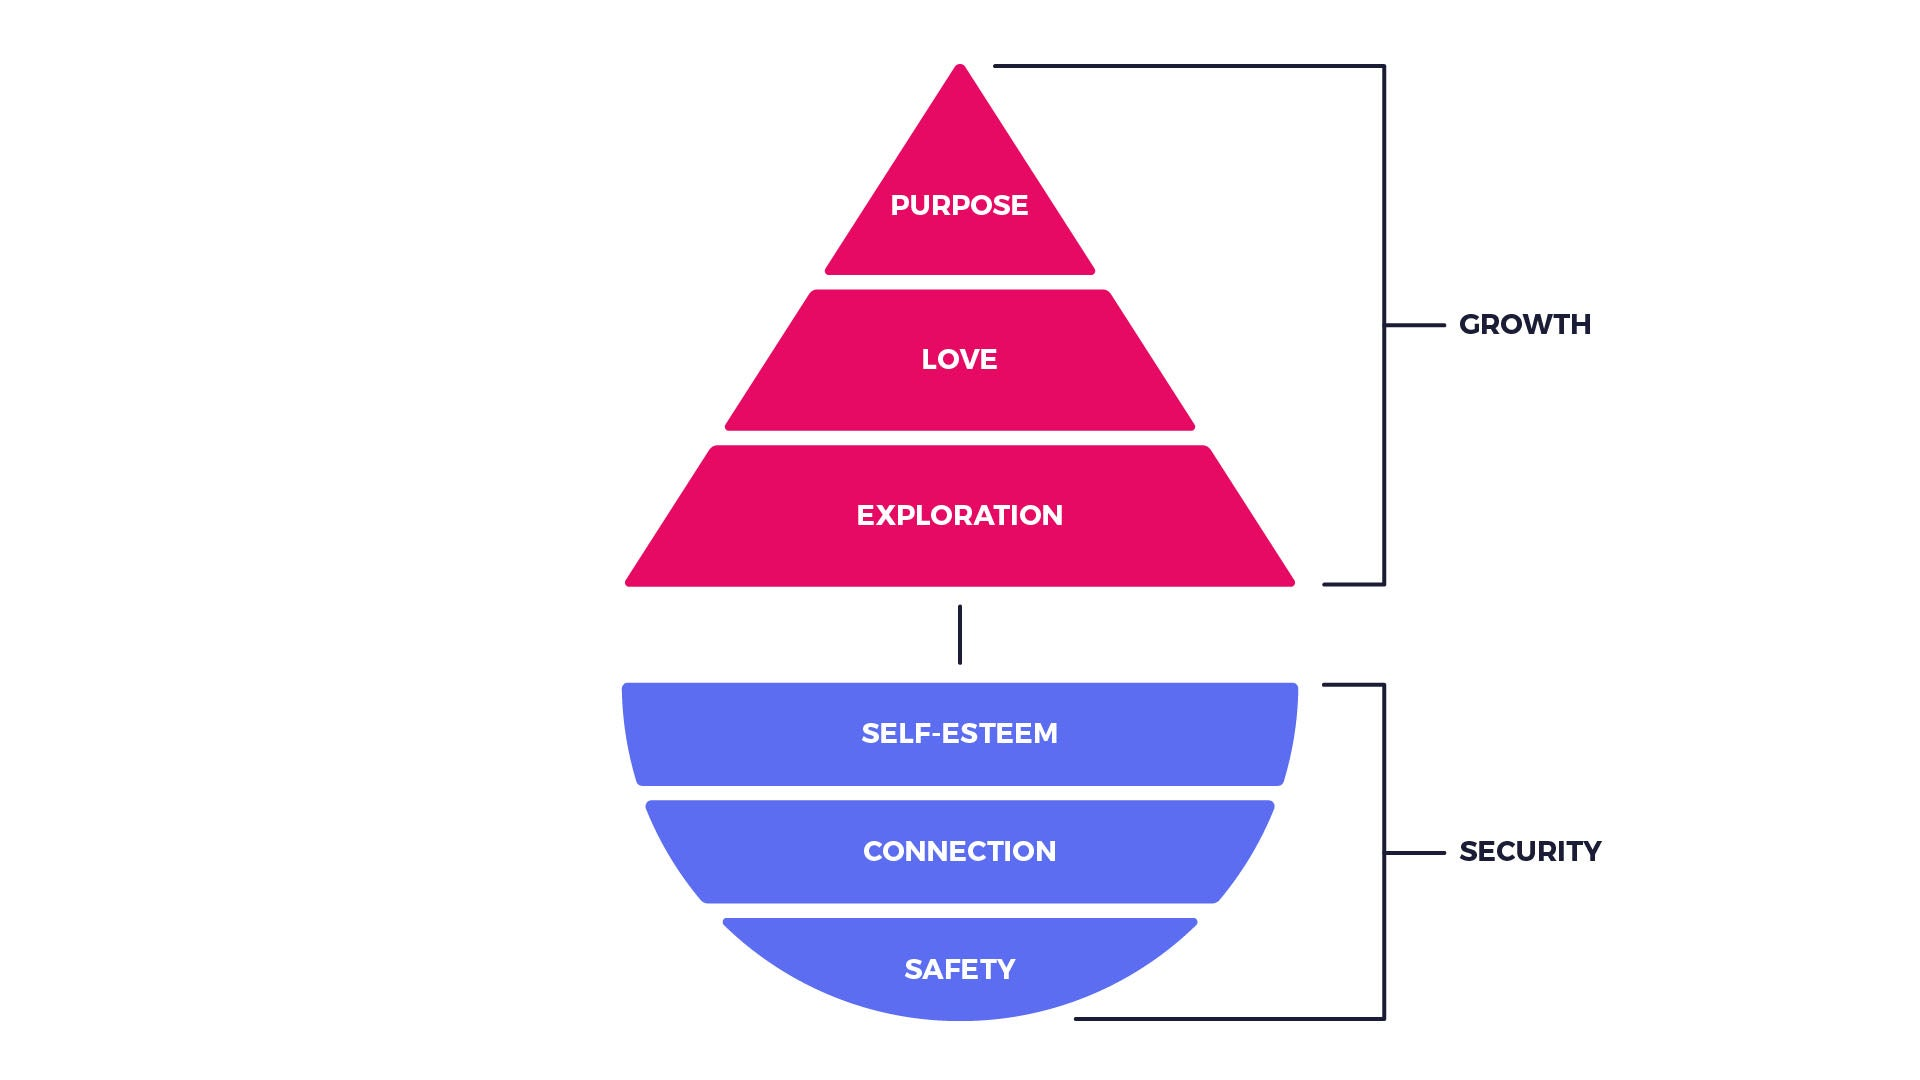 Maslow's Pyramid of needs reworked as a boat.